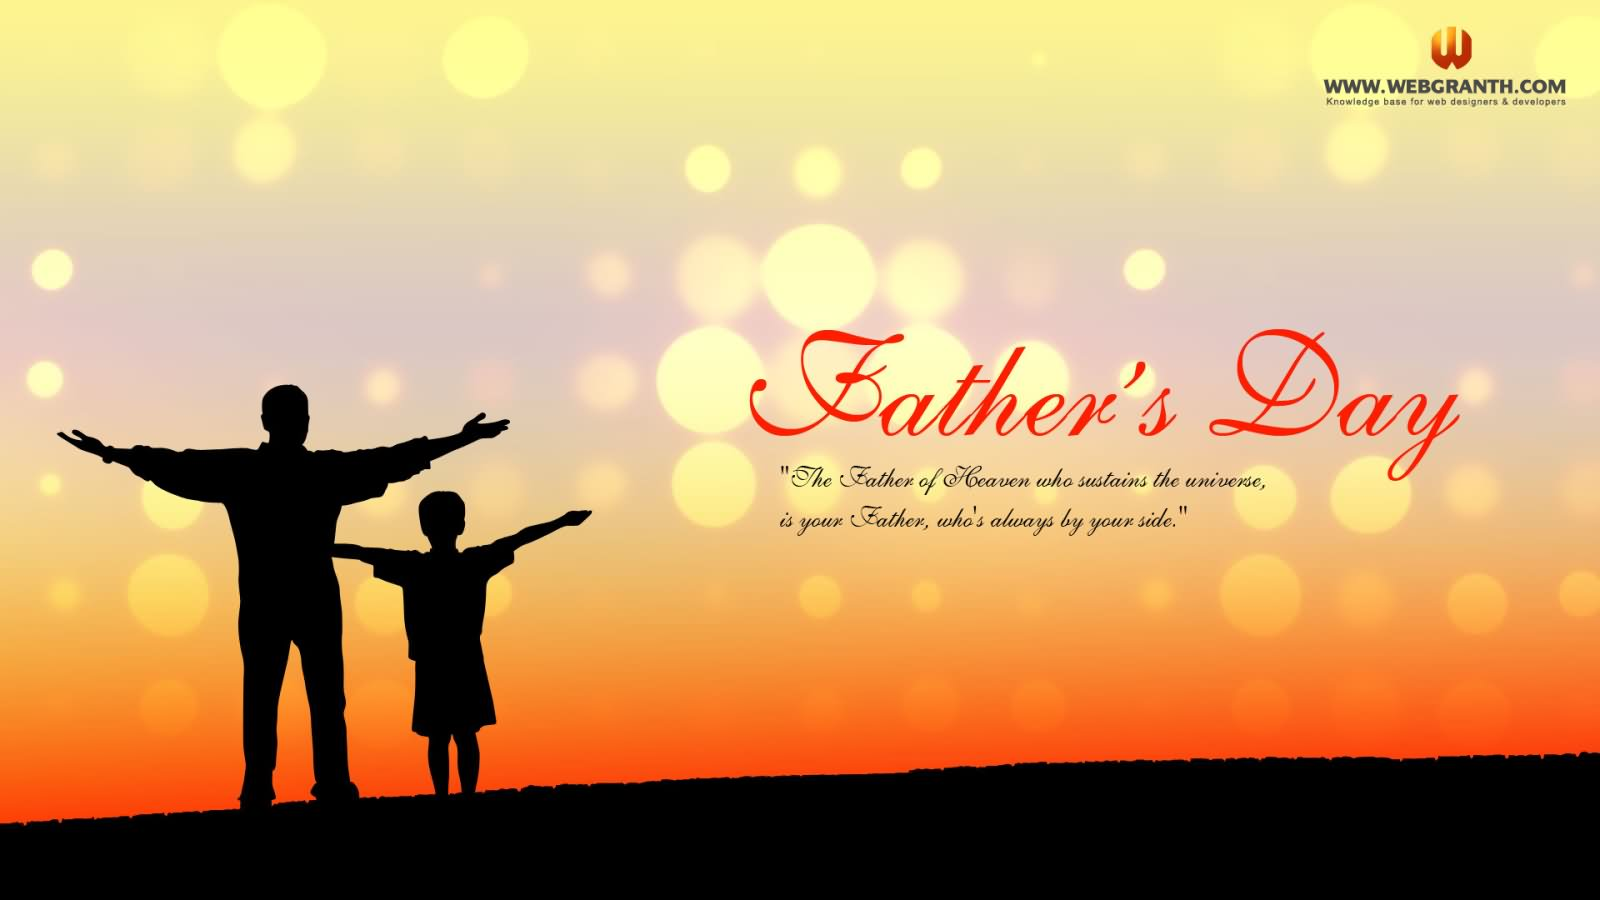 31 Beautiful Father S Day Wish Pictures And Photos Watermelon Wallpaper Rainbow Find Free HD for Desktop [freshlhys.tk]